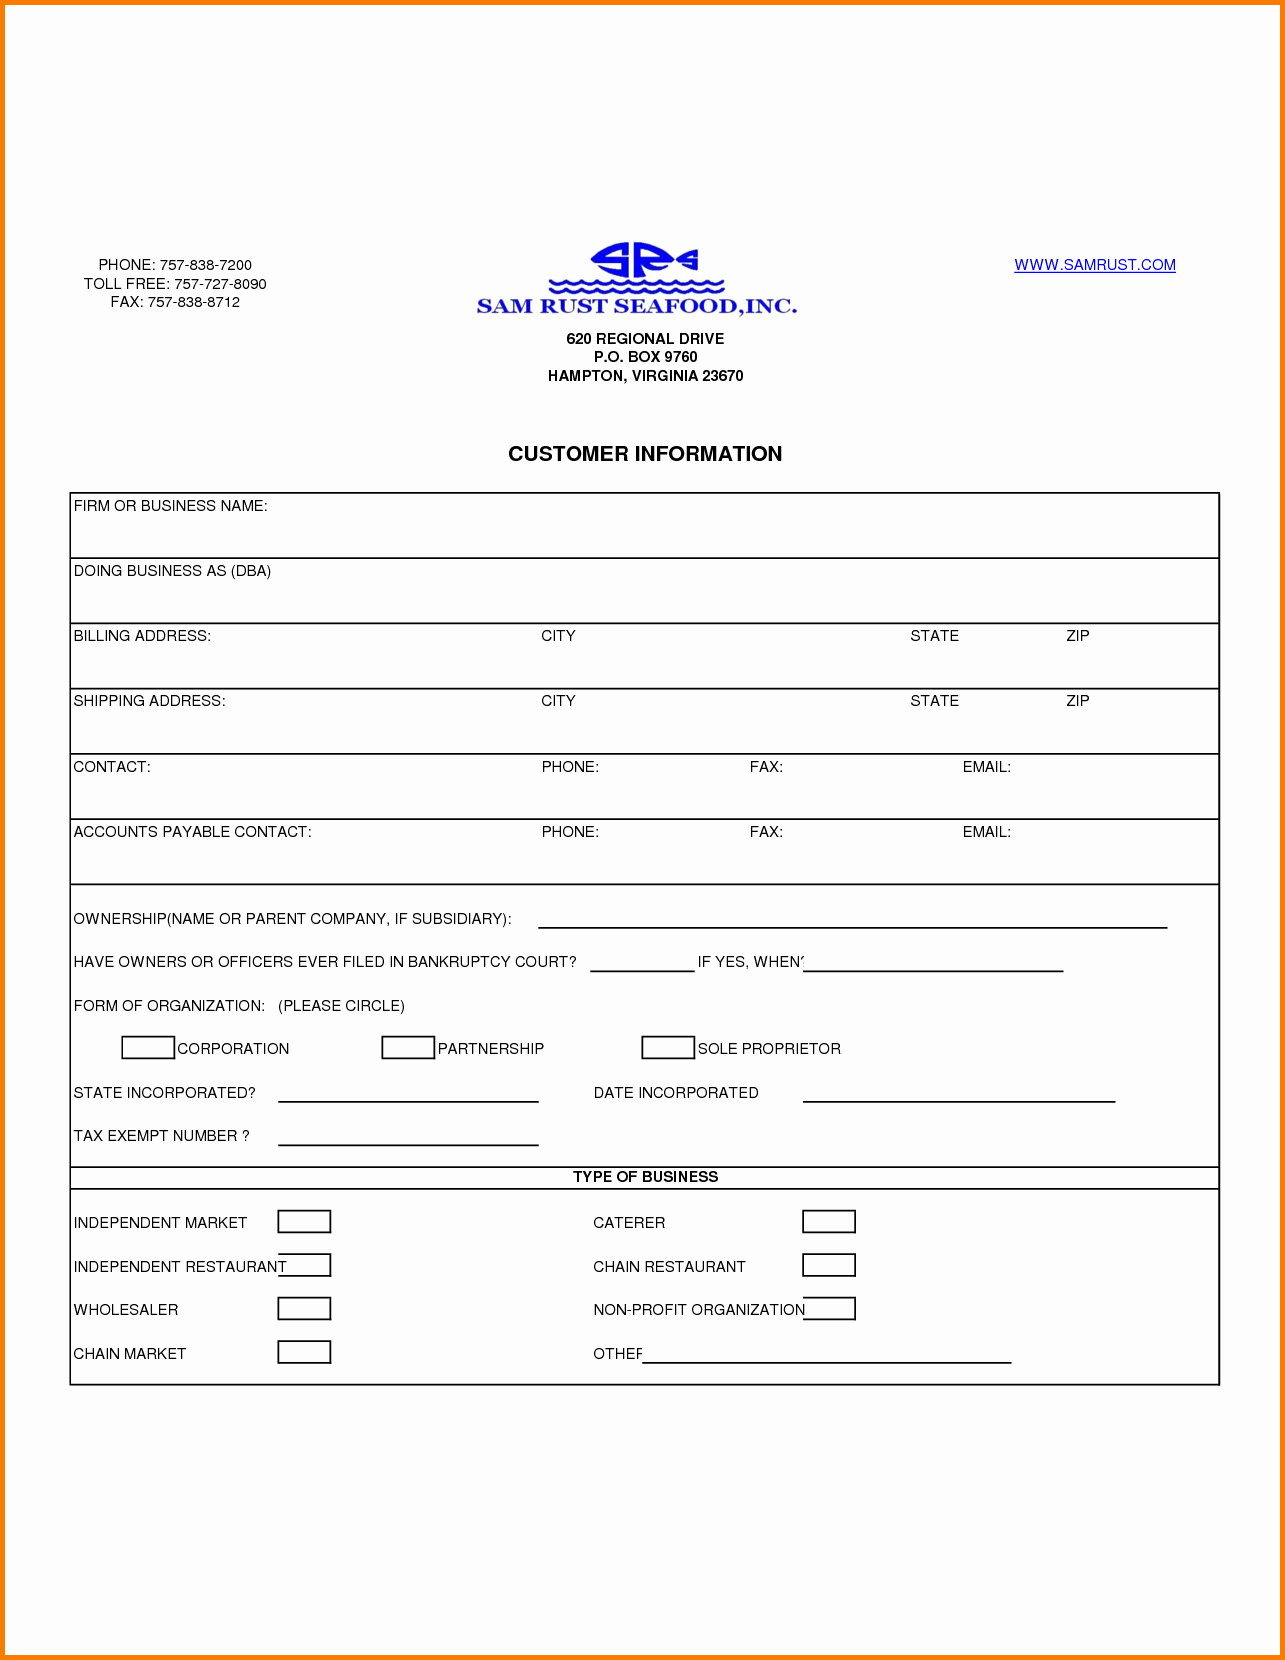 New Customer form Template Fresh Customer Information Template